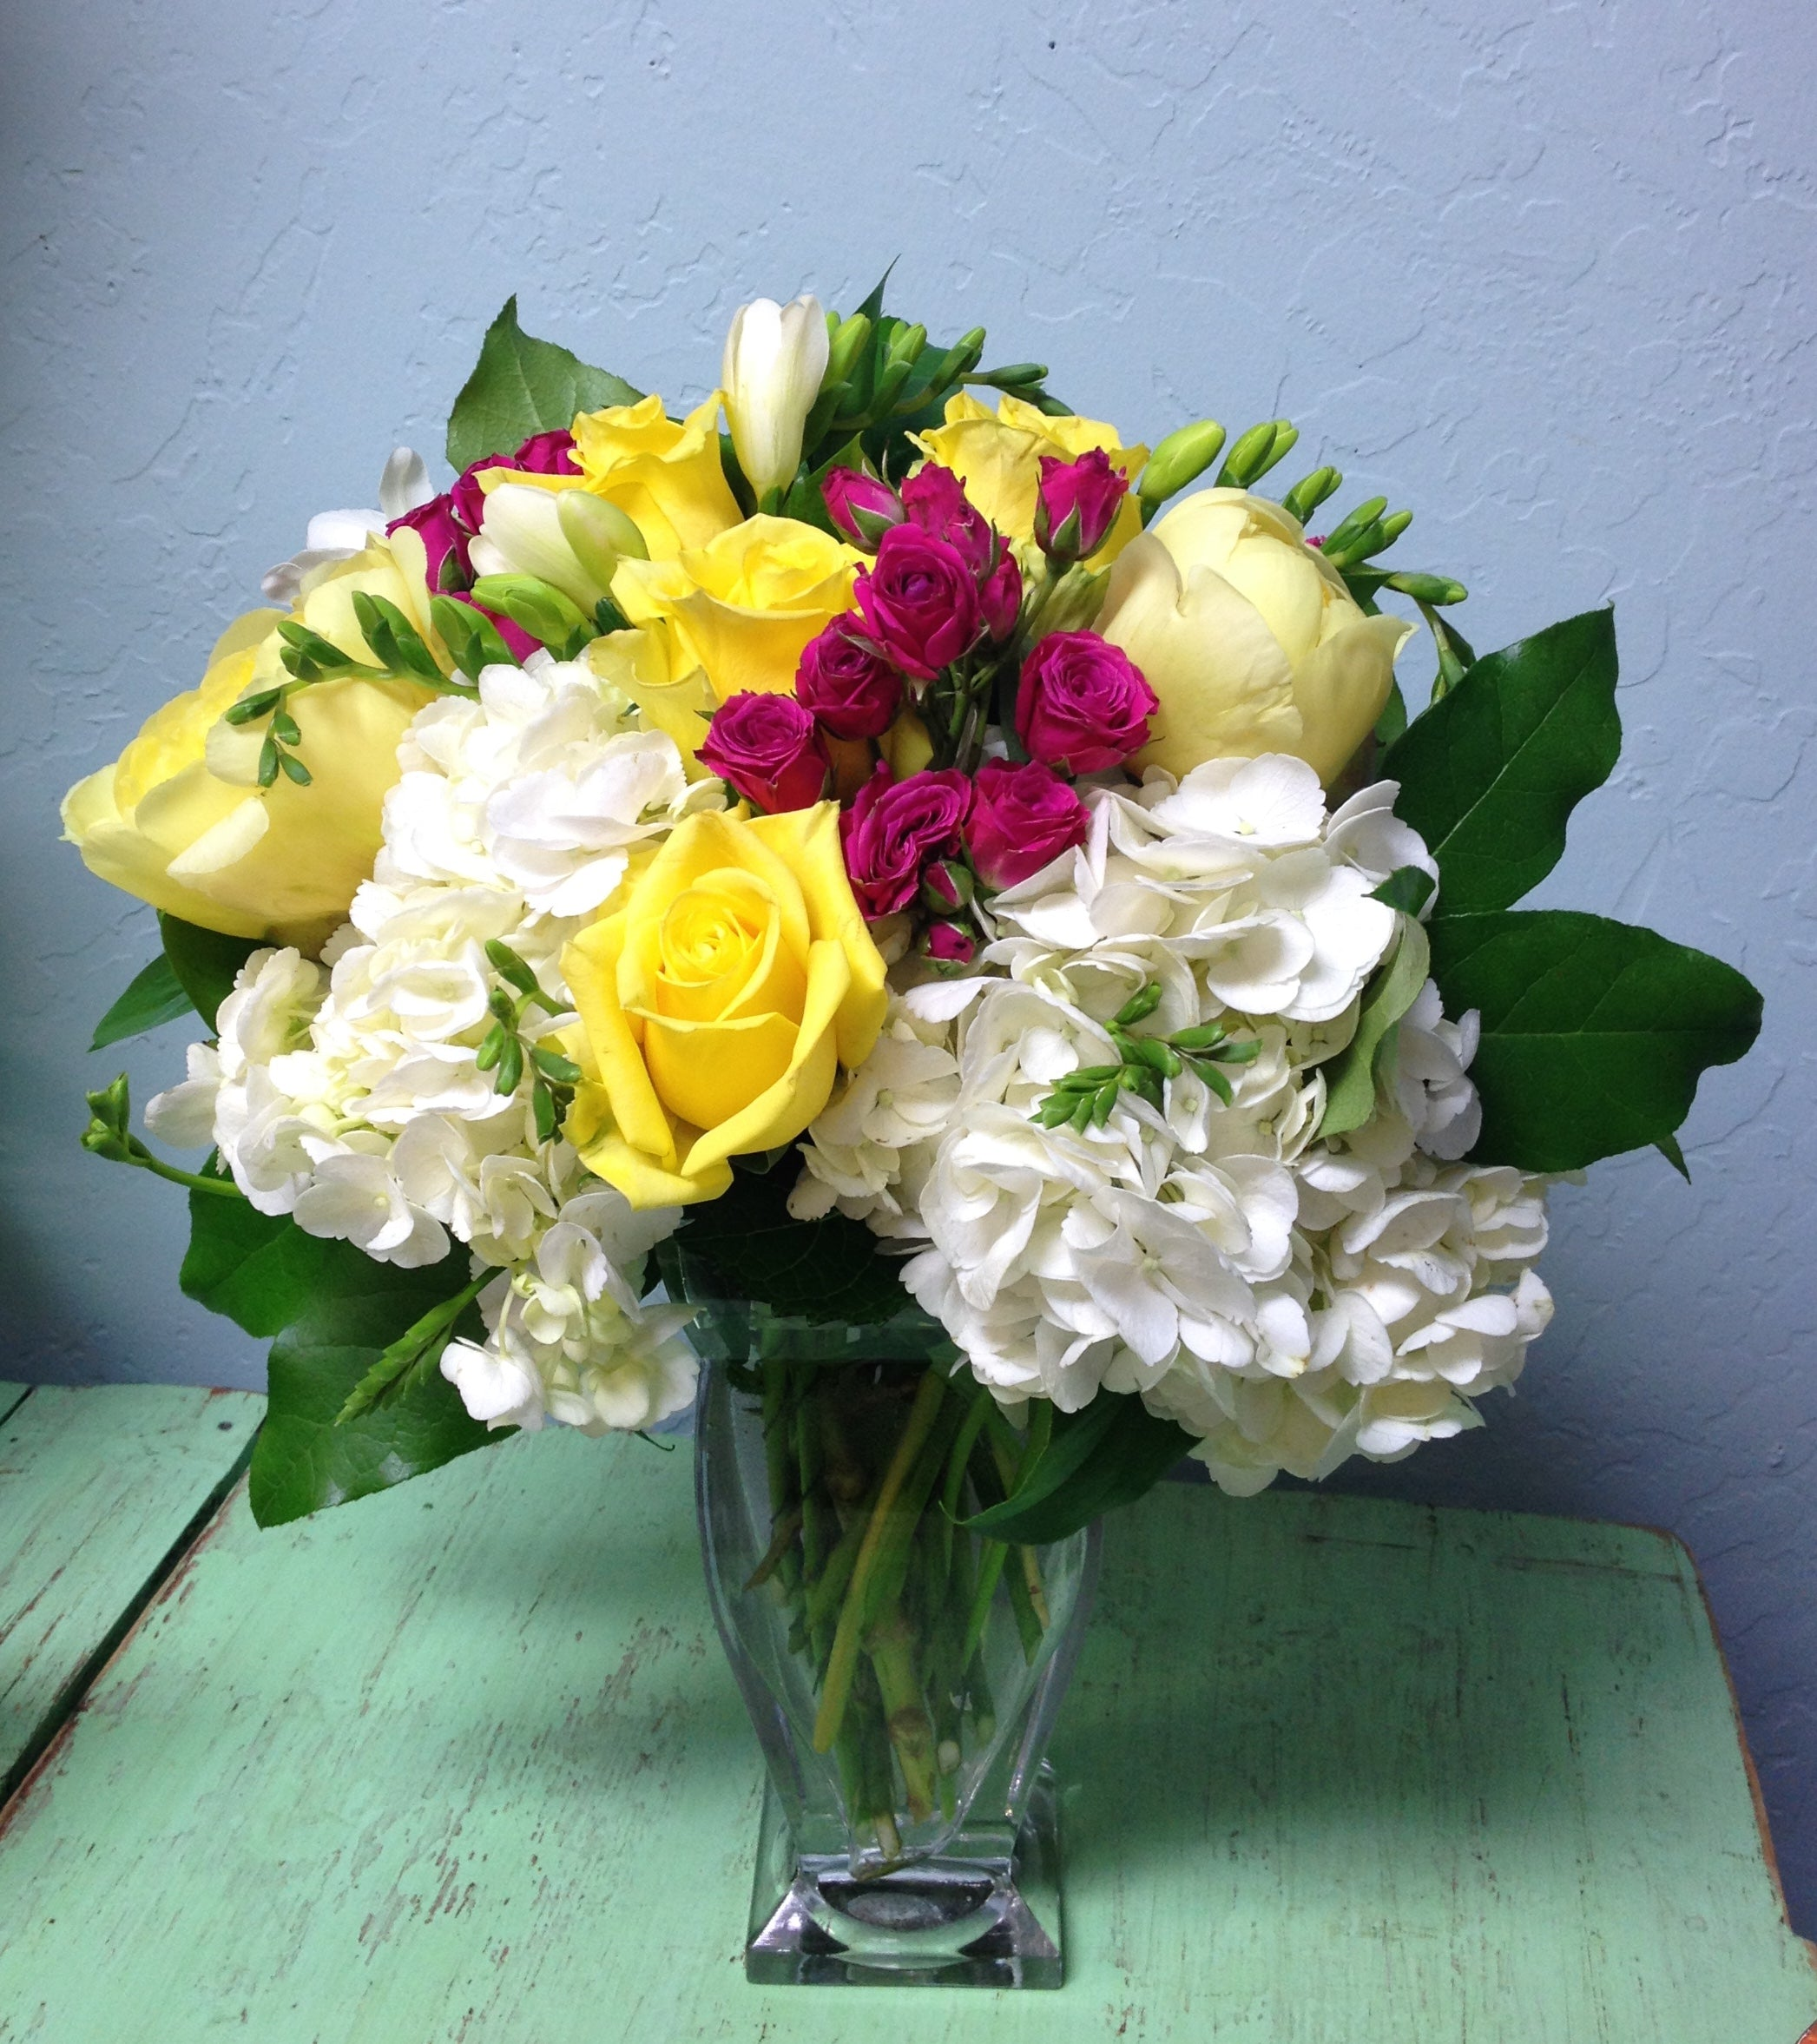 yellow and pink luxury floral arrangement clovis florist mother's day delivery gift ideas